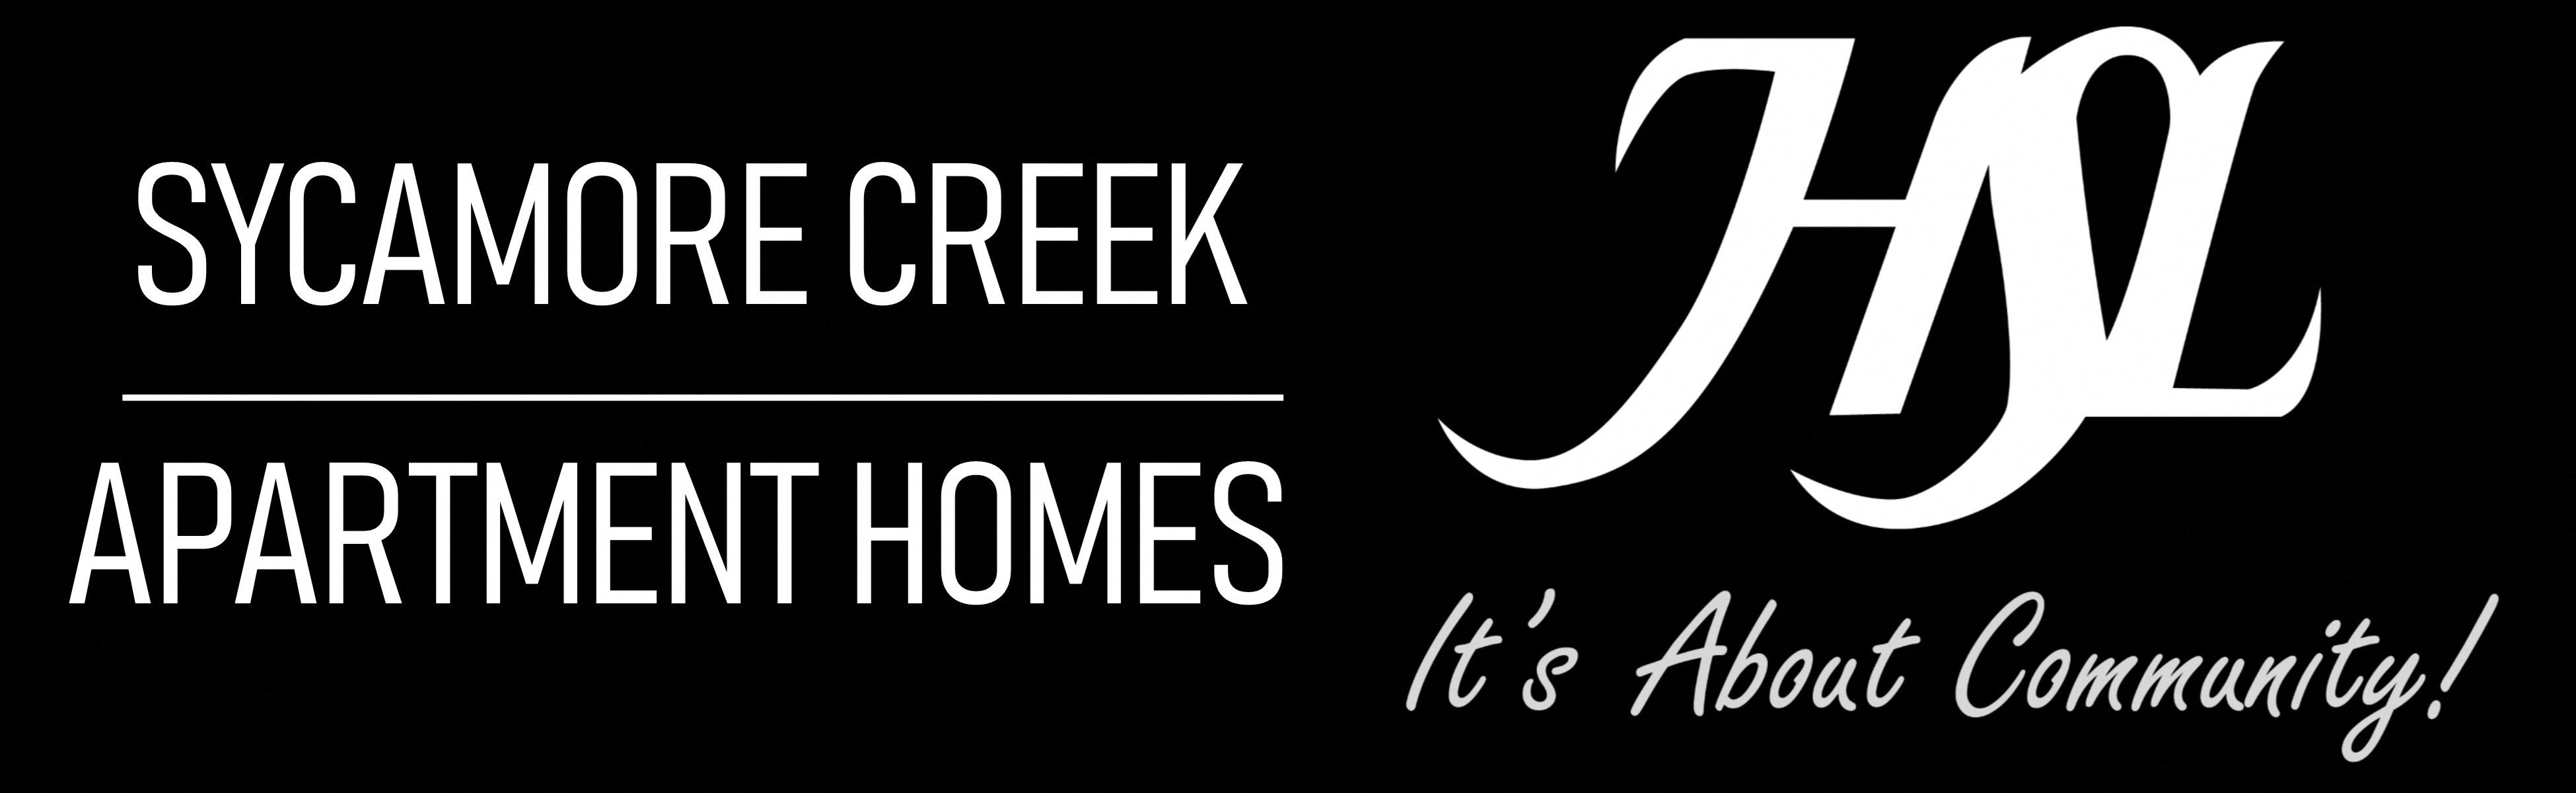 Sycamore Creek Apartment Homes